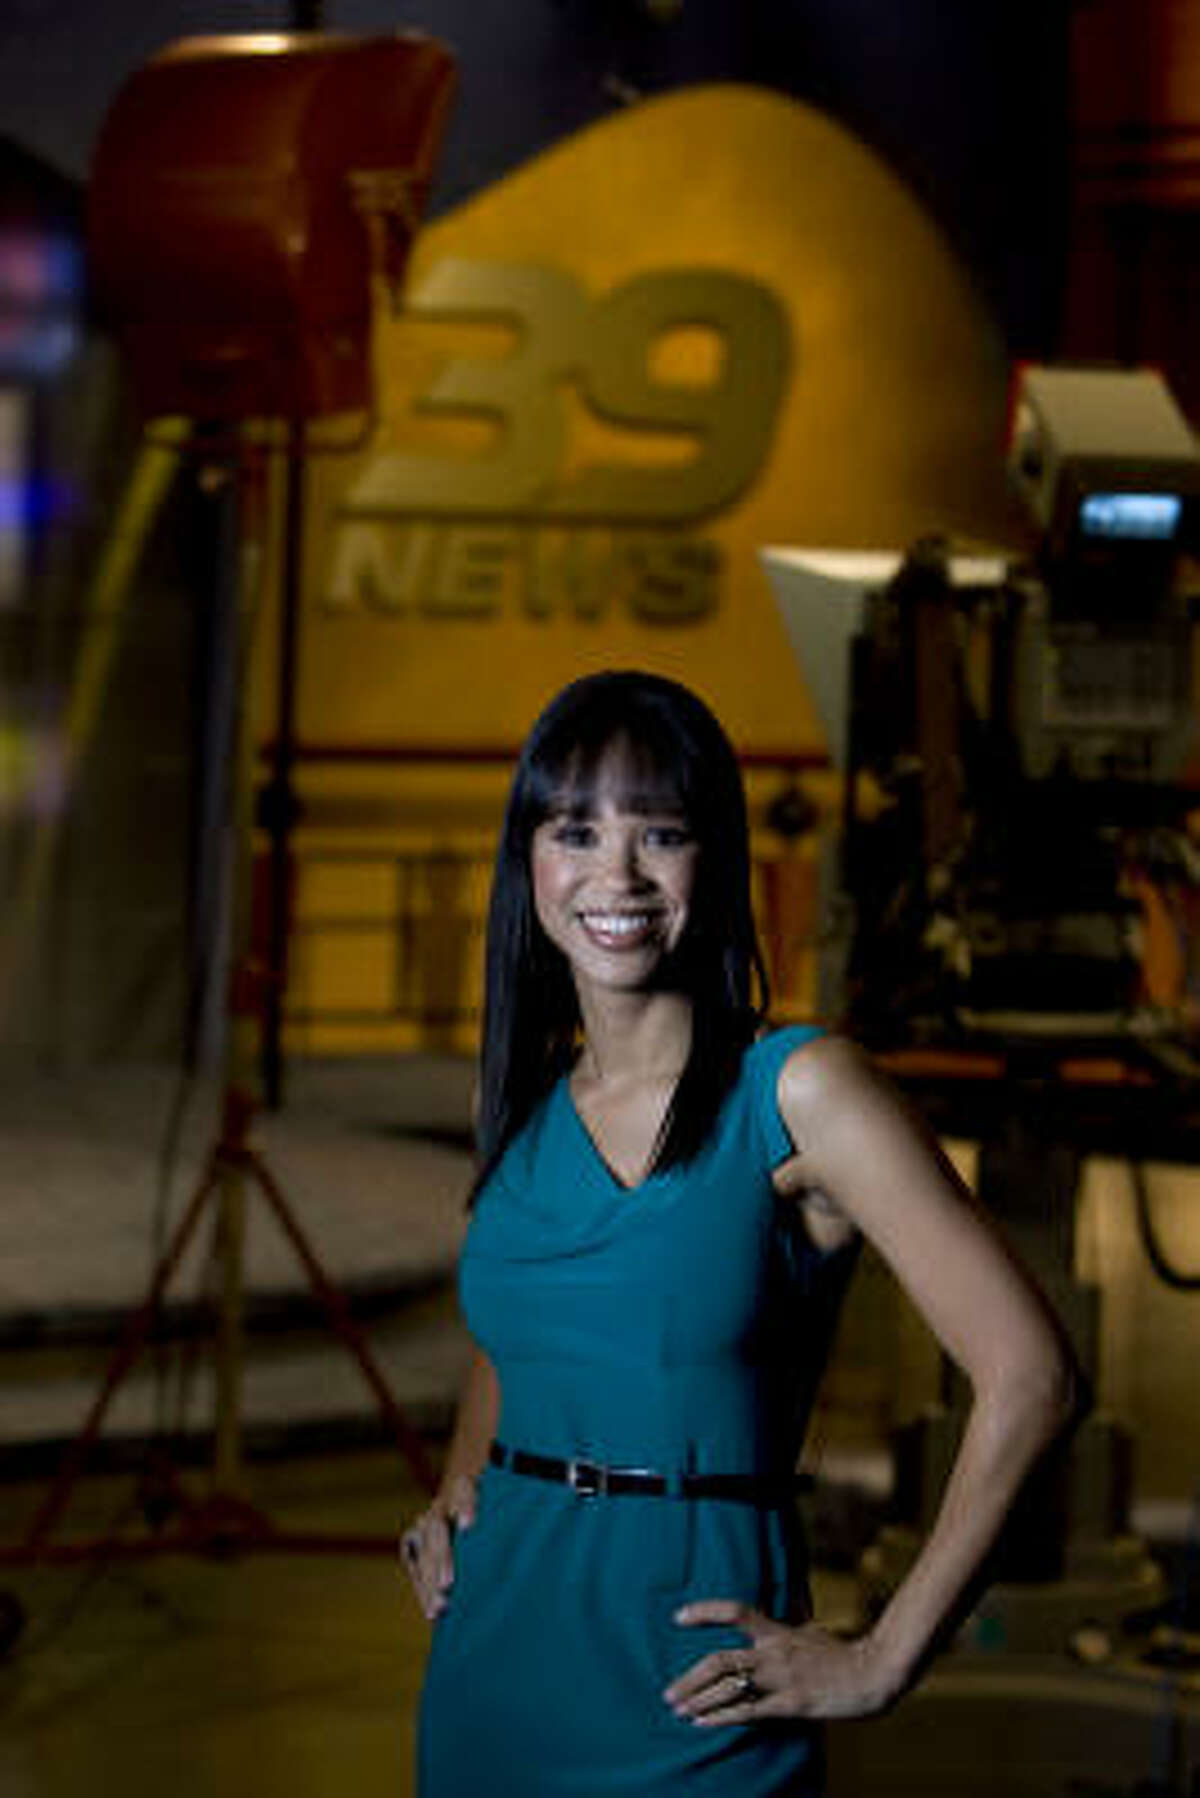 Mia Gradney has been the prime-time news anchor at Channel 39 since fall 2008. Read more about how she's trying to lift her struggling station.